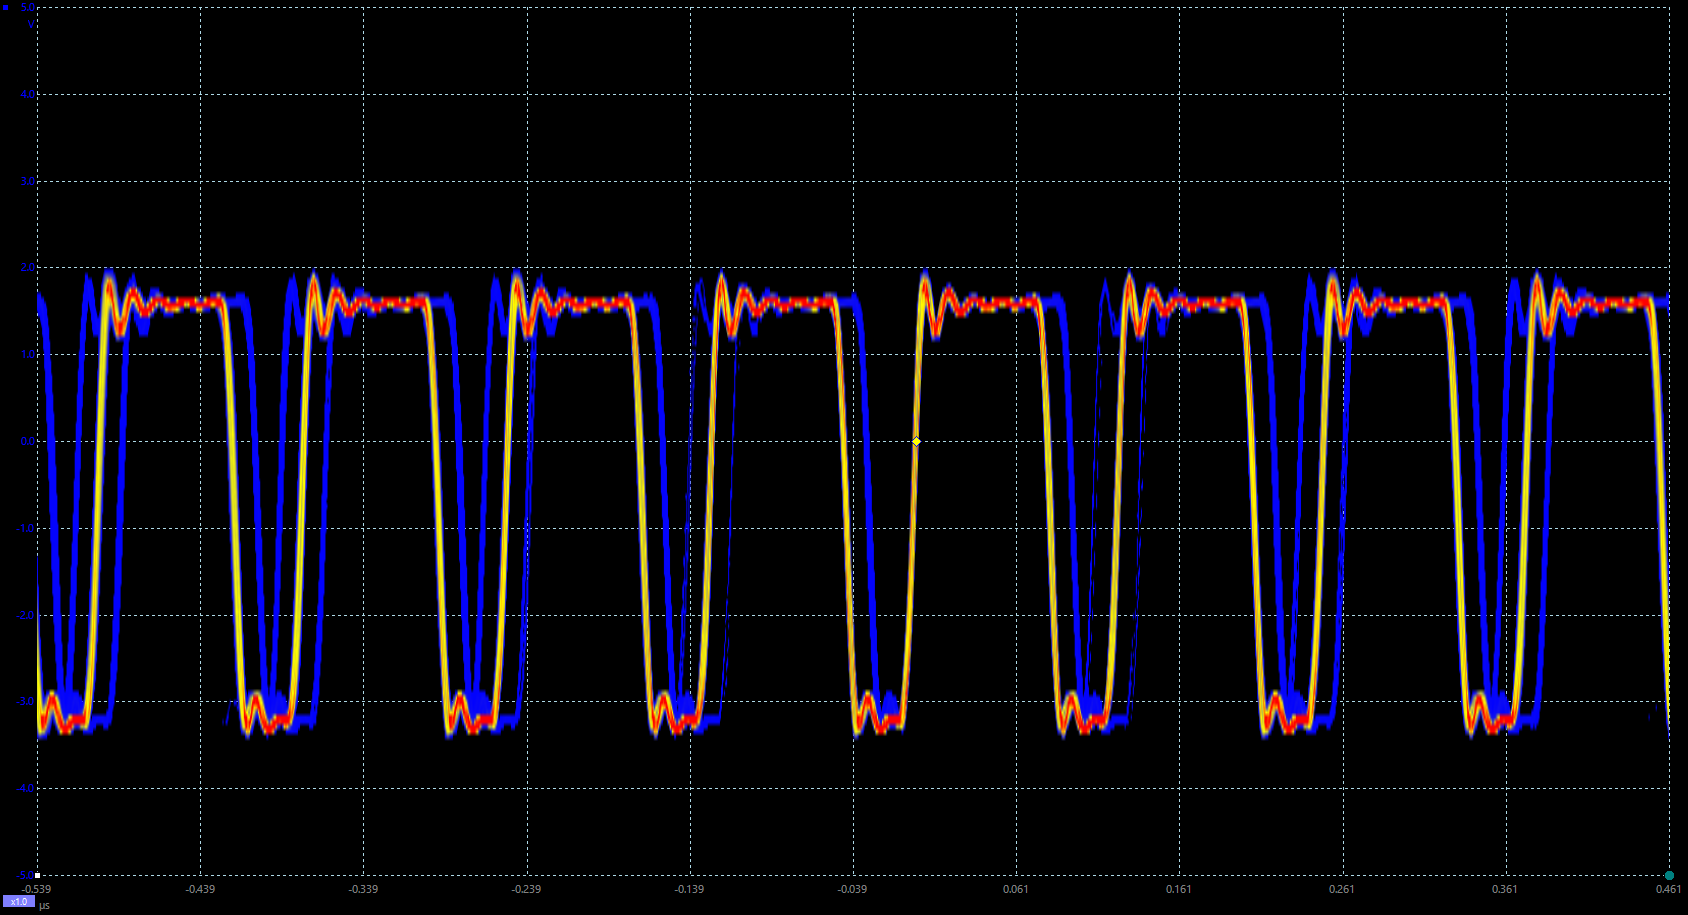 The derived clock contains a lot of jitter.